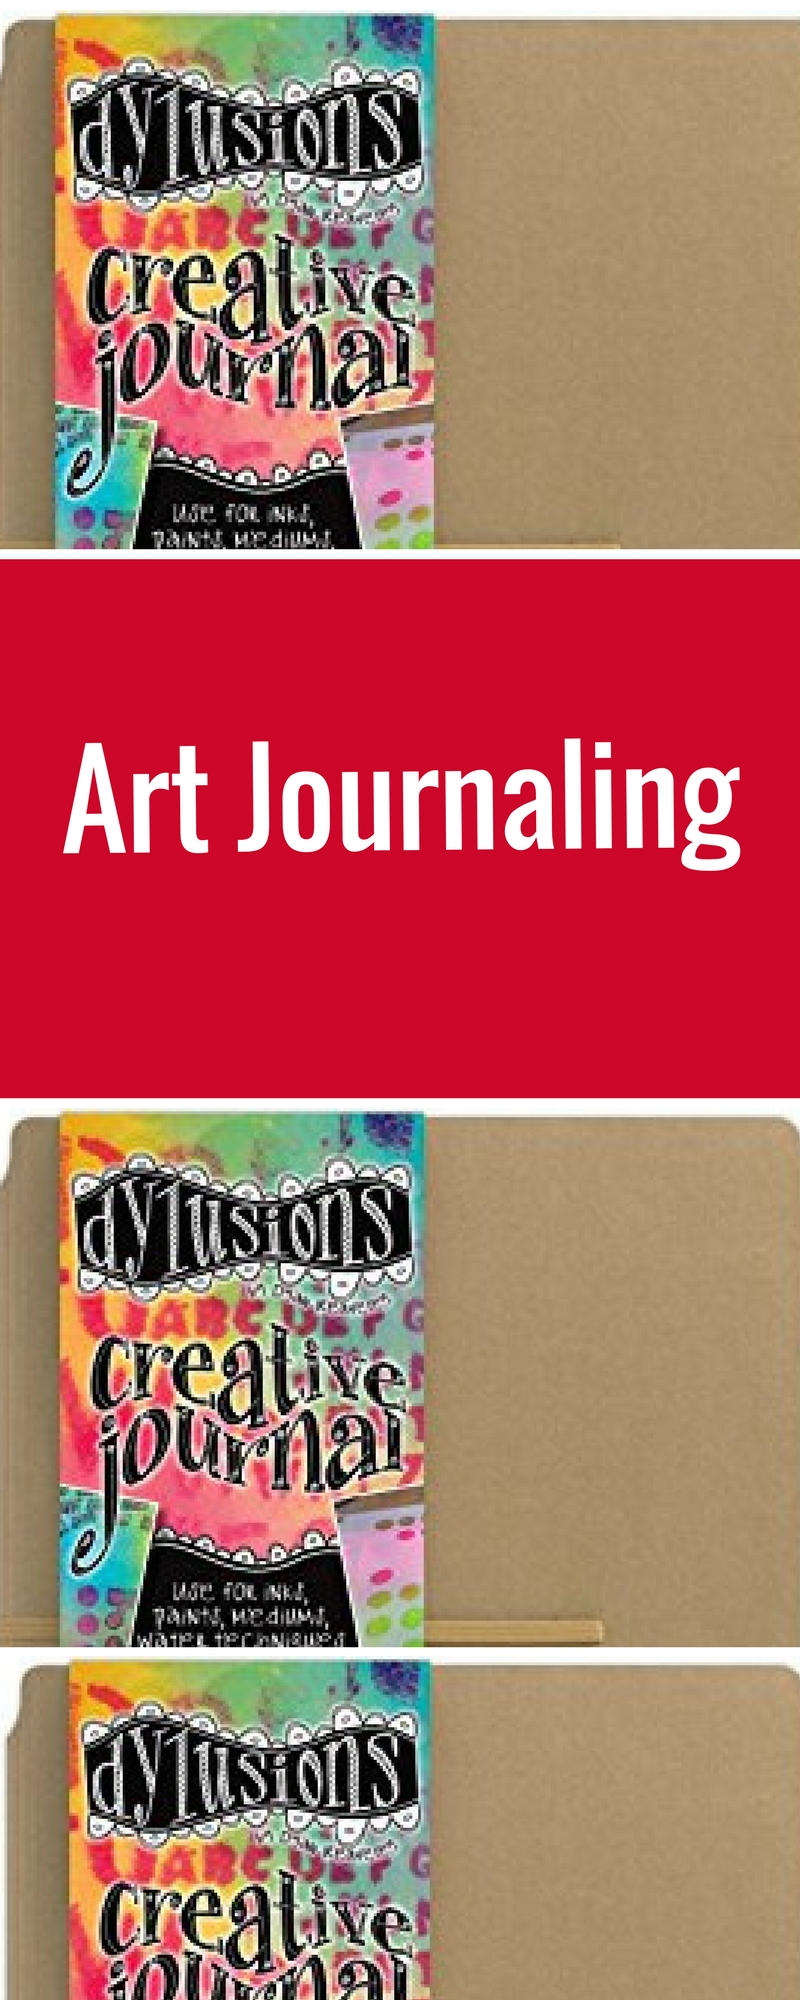 Art Journaling | Featuring Ranger Dylusions Creative Journal | Creative Scrapbooker Magazine